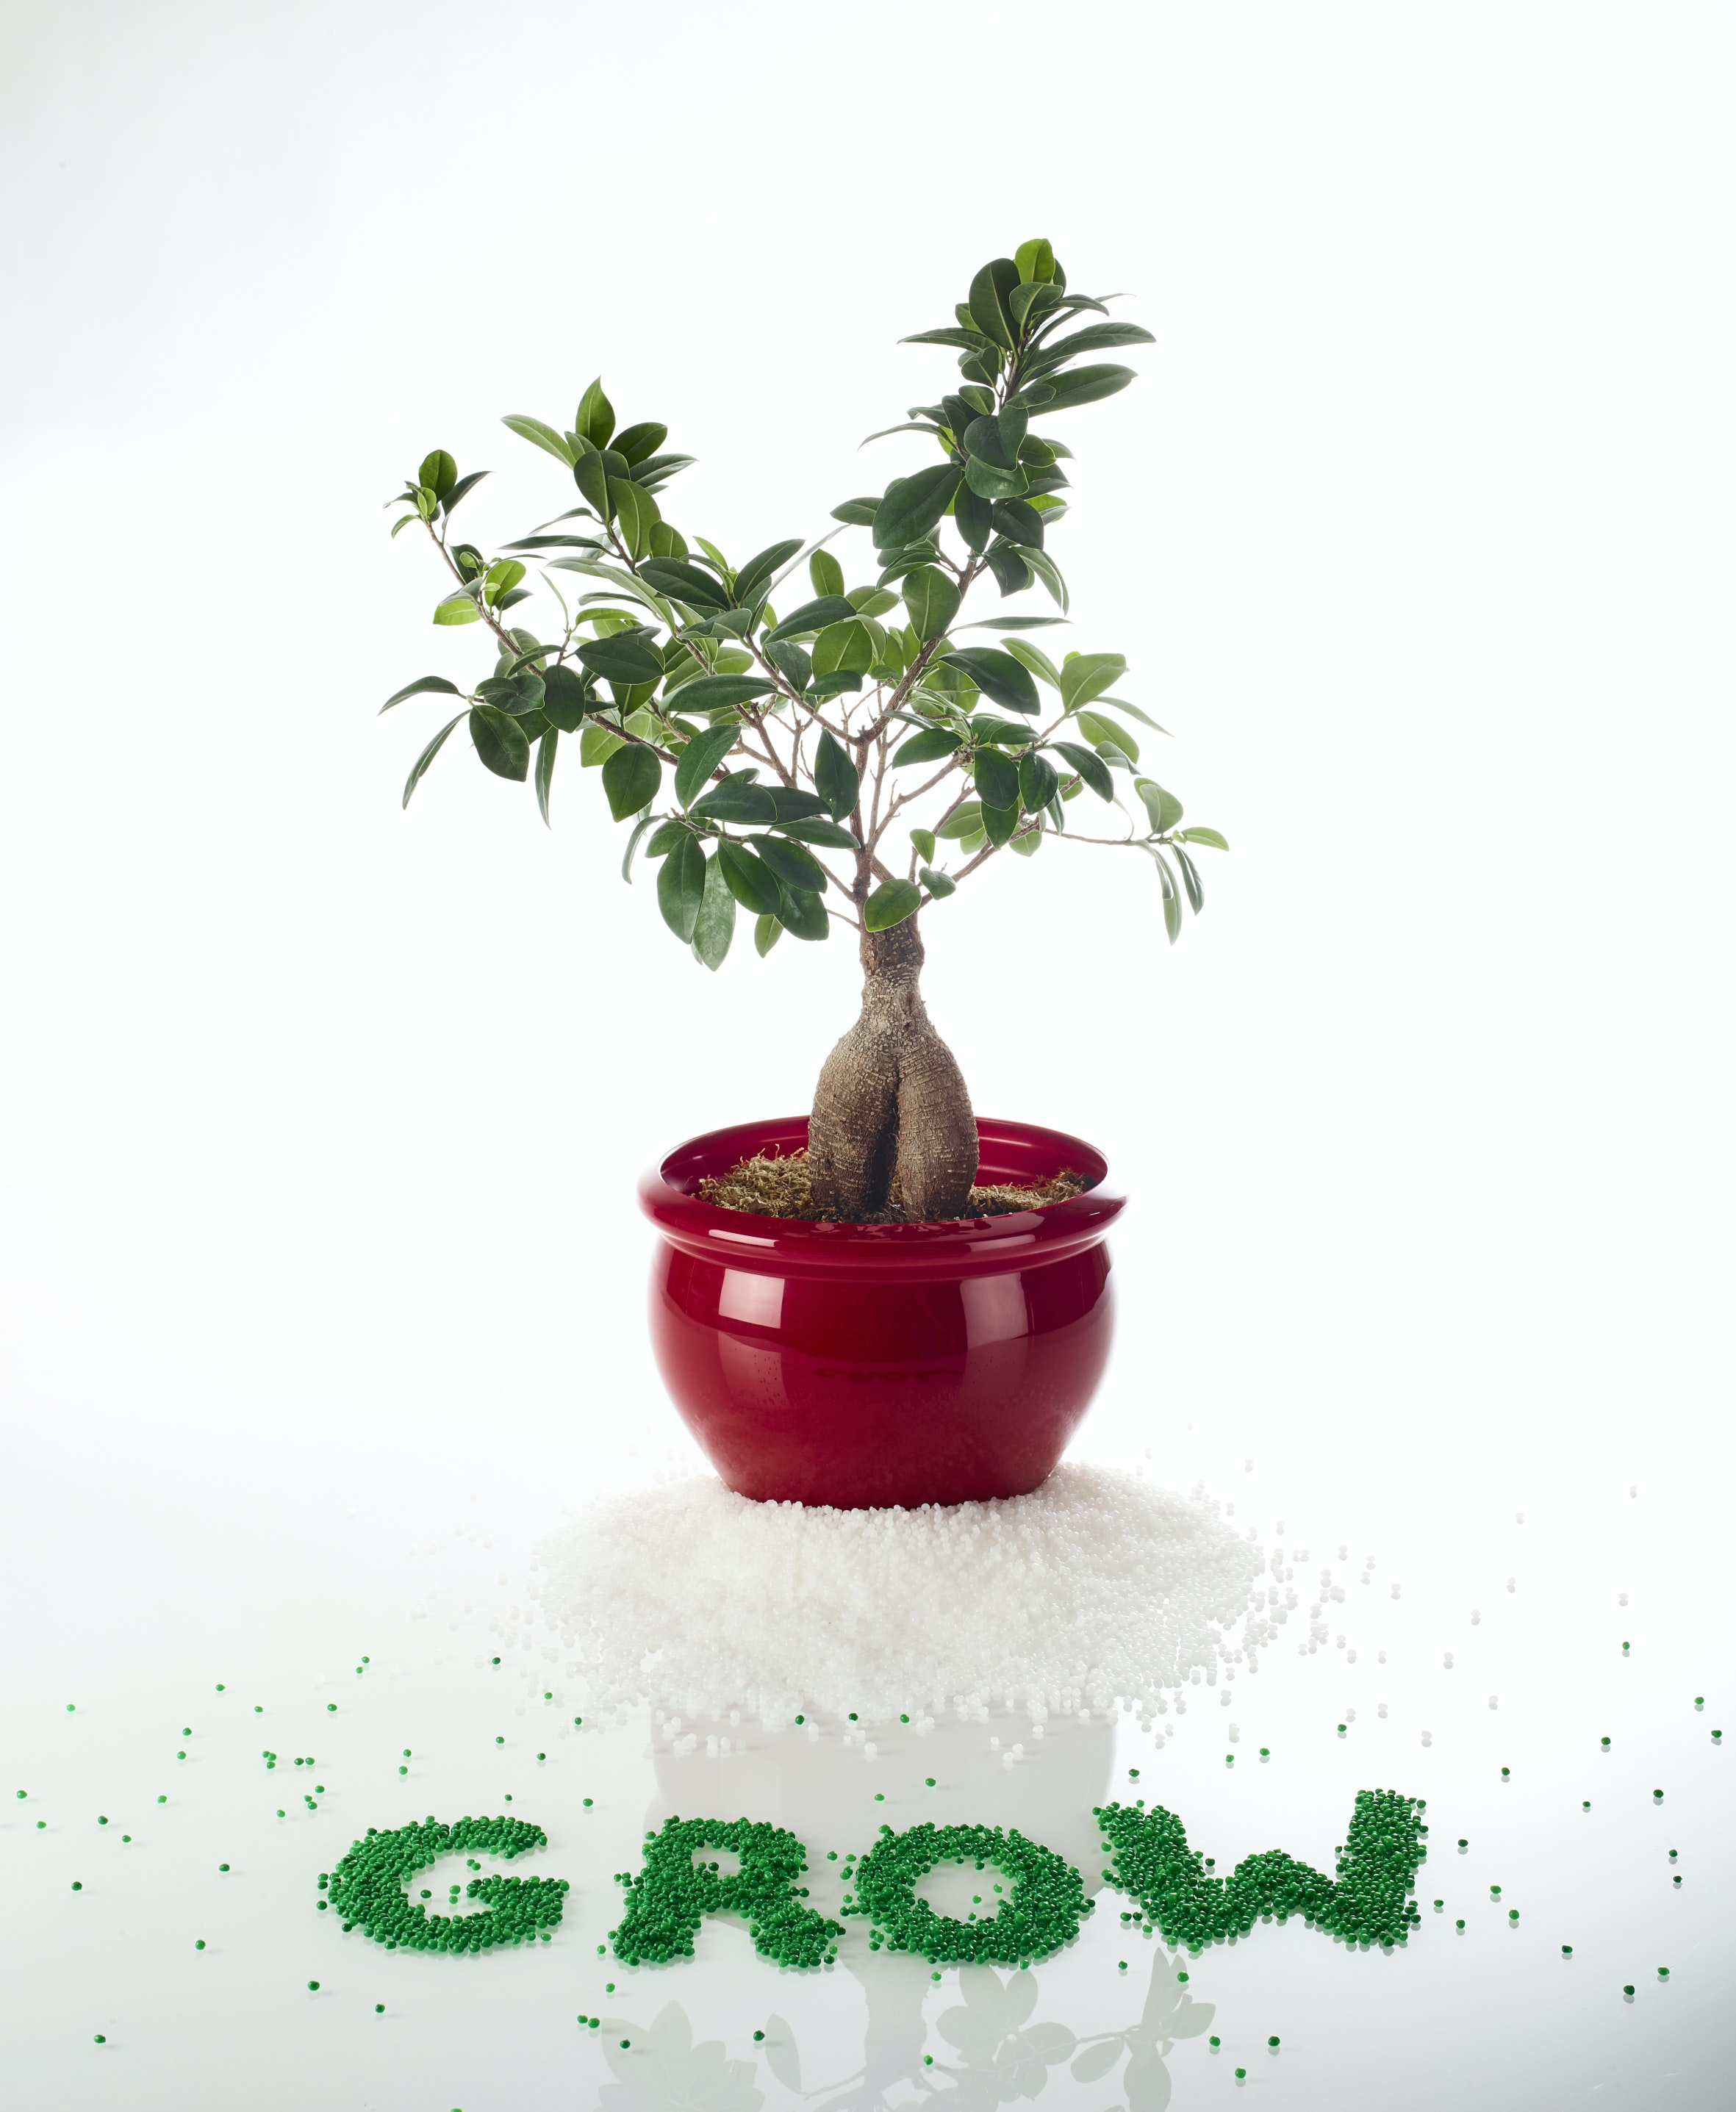 GROW bonsai klebstoff